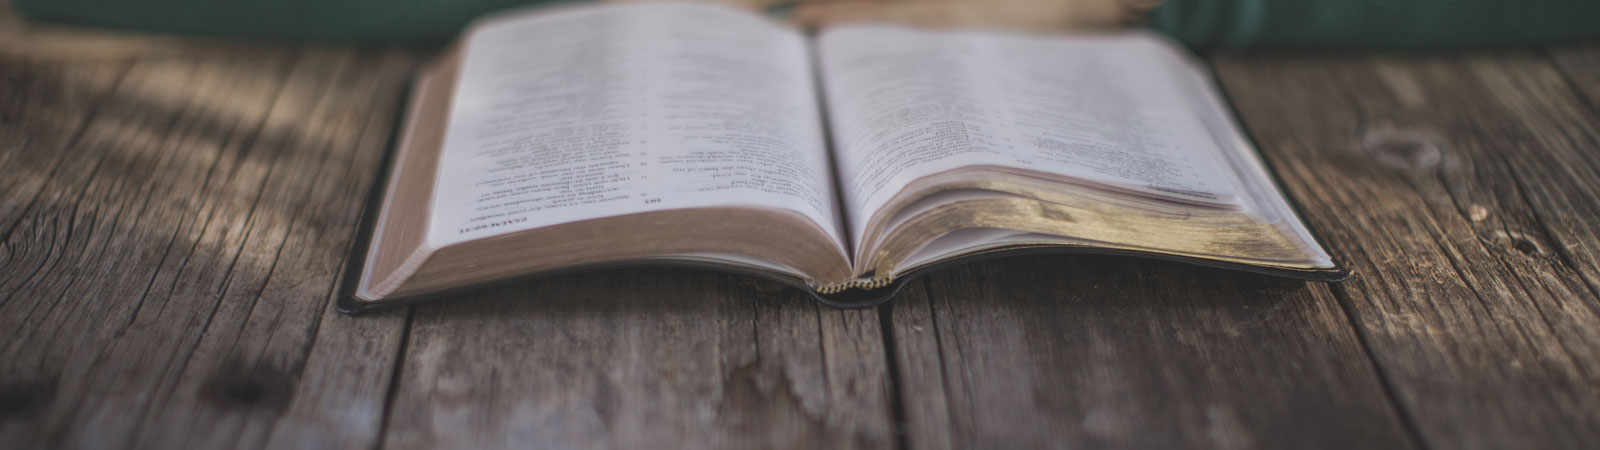 Bible Open, Ministry, Local church